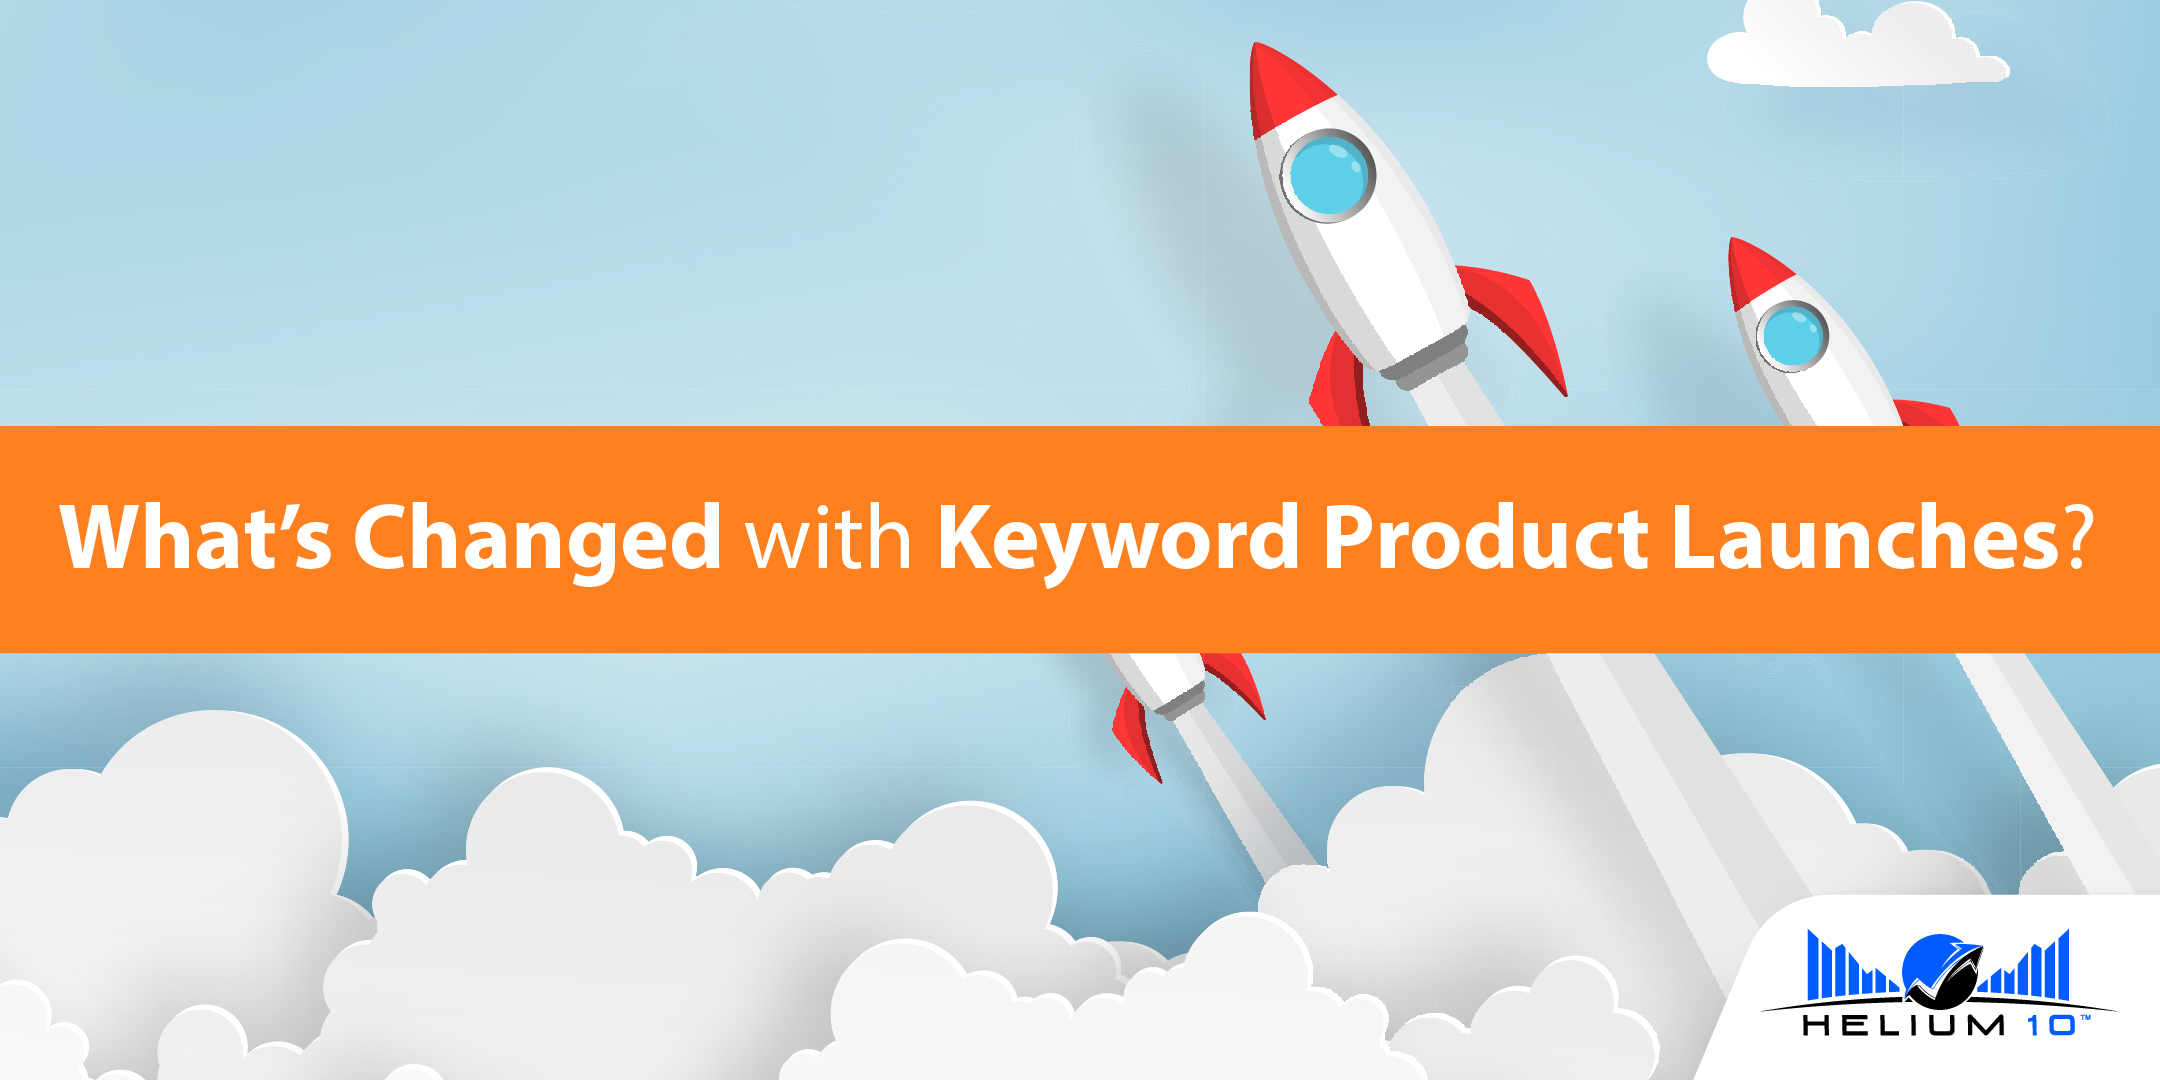 Keyword Product Launches